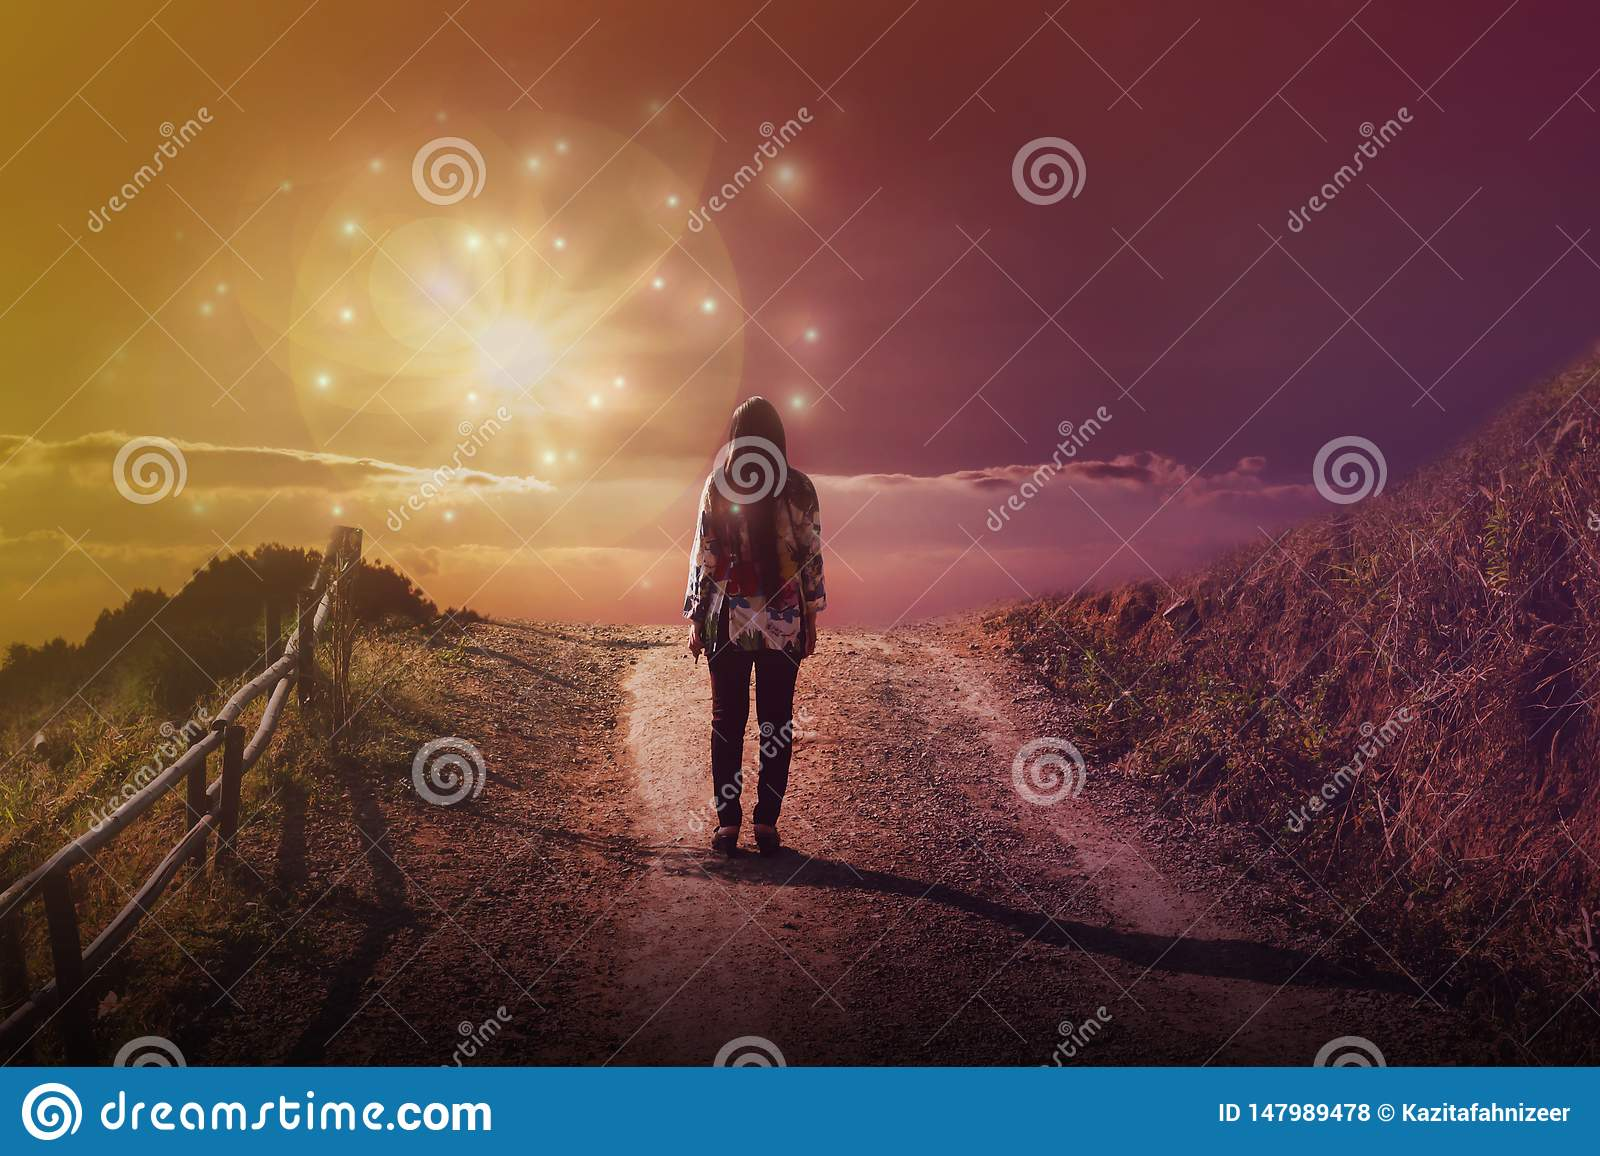 Women rare view standing in front of God sun light flare with dreamy fantasy sky and cloud, women at end of street or way